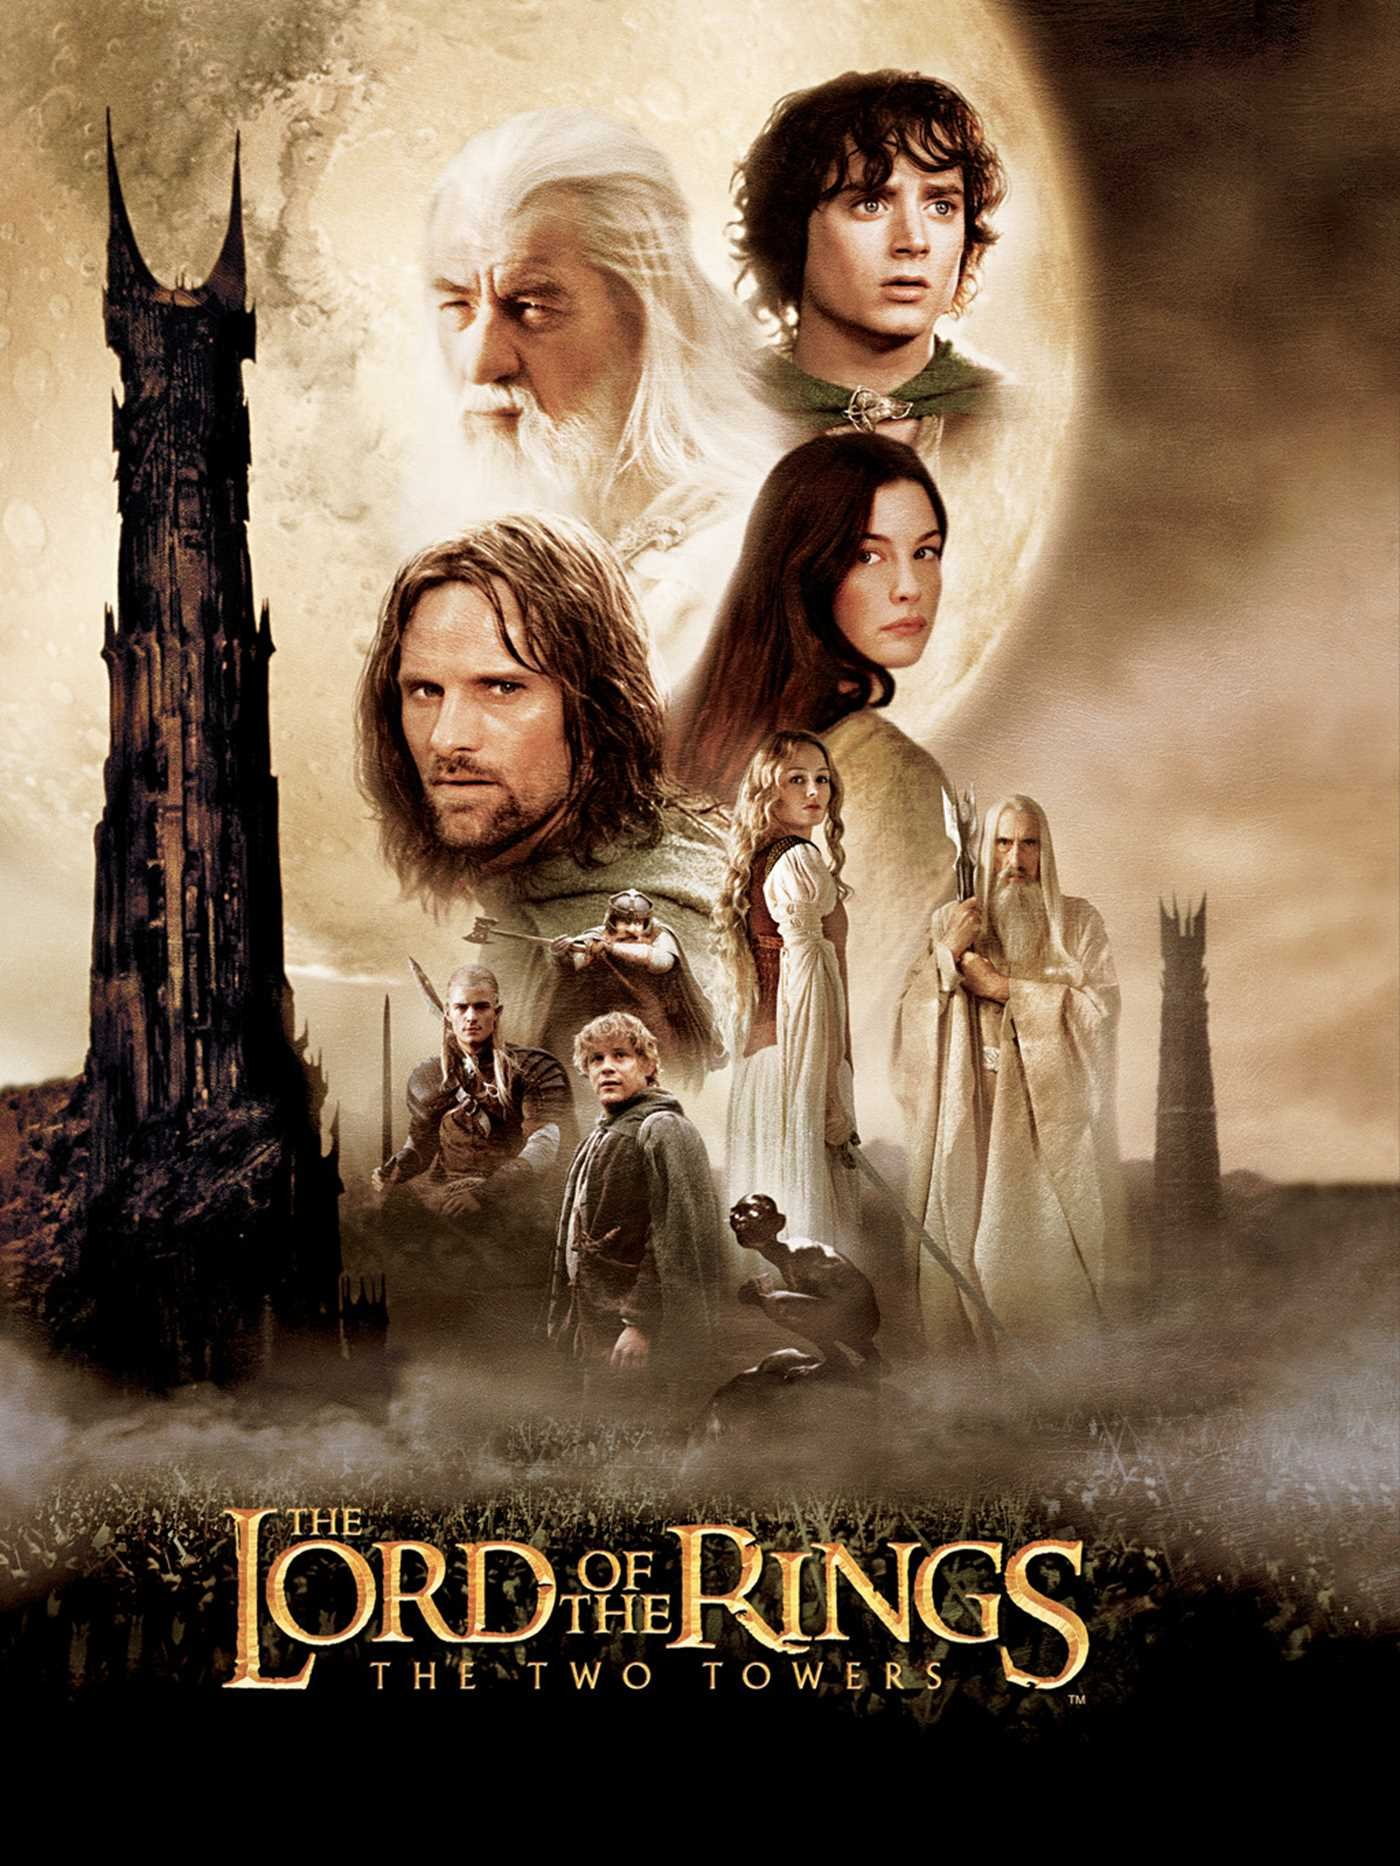 The Lord of the Rings: The Definitive Movie Posters (Insights Poster  Collections): New Line Cinema: 9781608873821: Amazon.com: Books